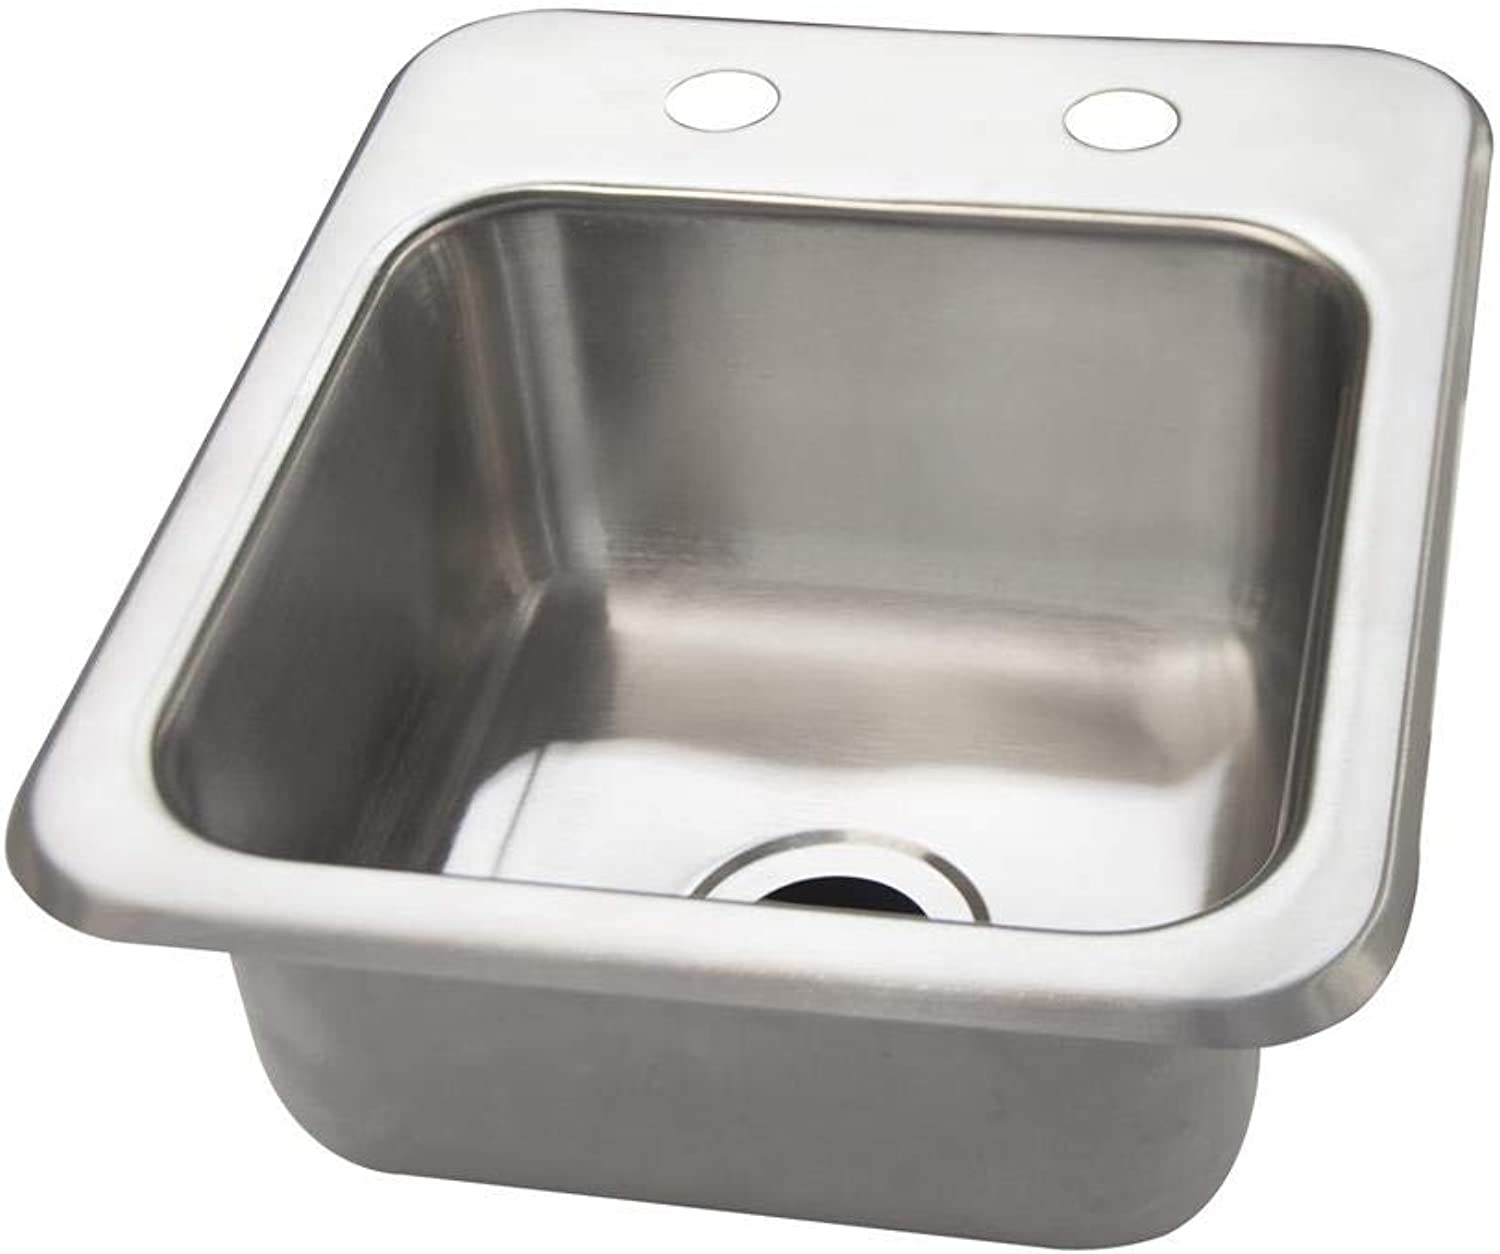 BK Resources DDI-0909524 20 Gauge Stainless Steel 9 x 9 x 5 Inch 1 Compartment Drop in Sink without Faucet